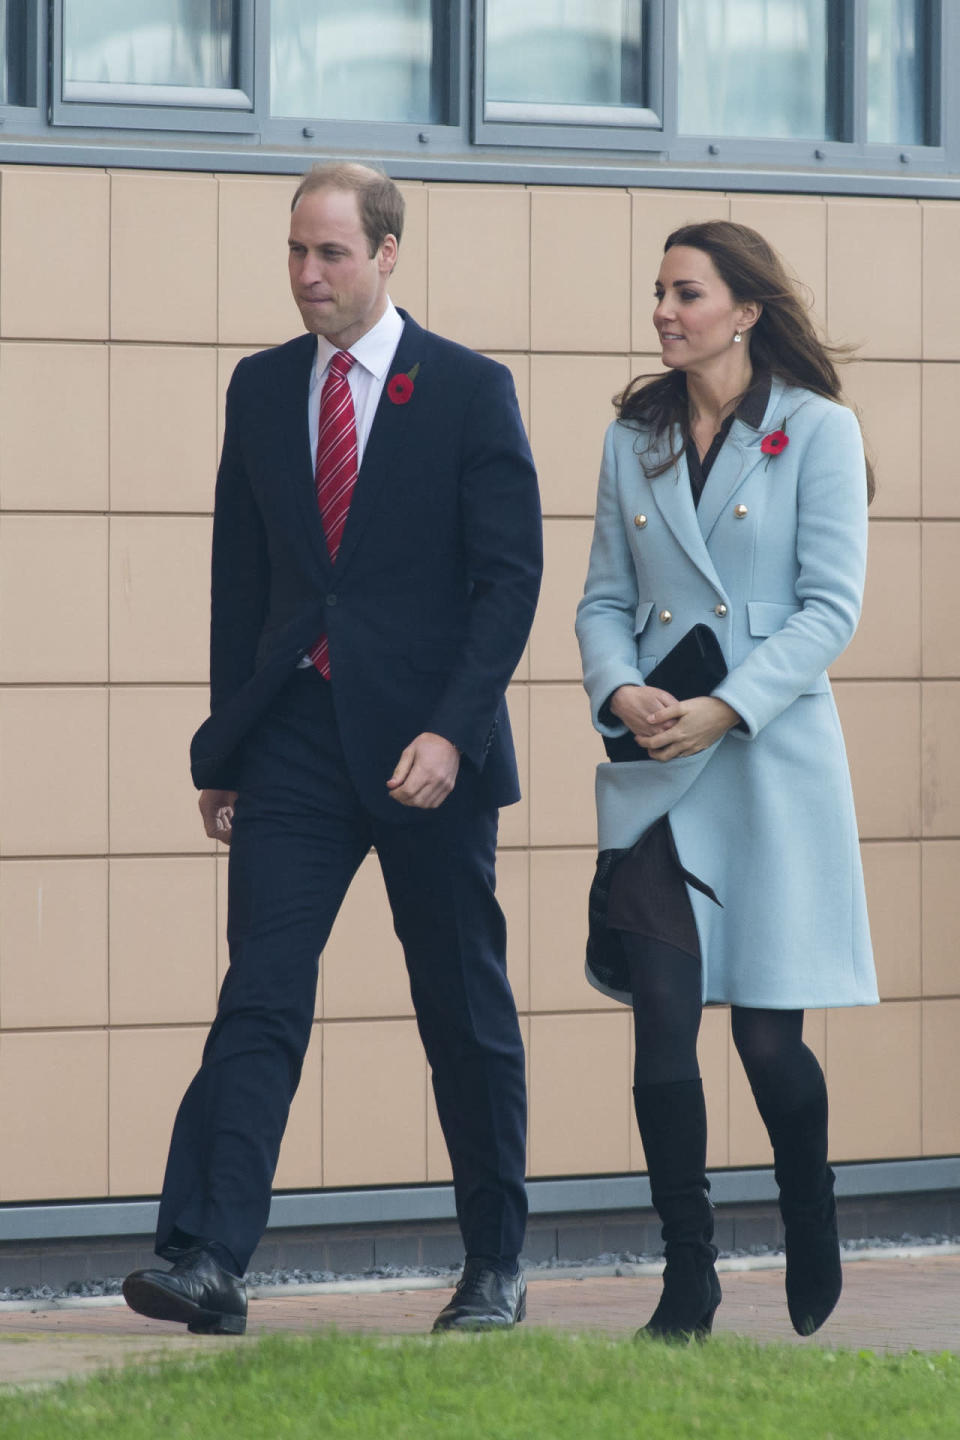 <p>The Duchess debuted a pale blue coat by British designer Matthew Williamson for a day in Wales. Underneath, she wore a brown shirt dress from Hobbs and accessorised with Aquatalia heeled boots and a Stuart Weitzman clutch. </p><p><i>[Photo: Getty]</i></p>